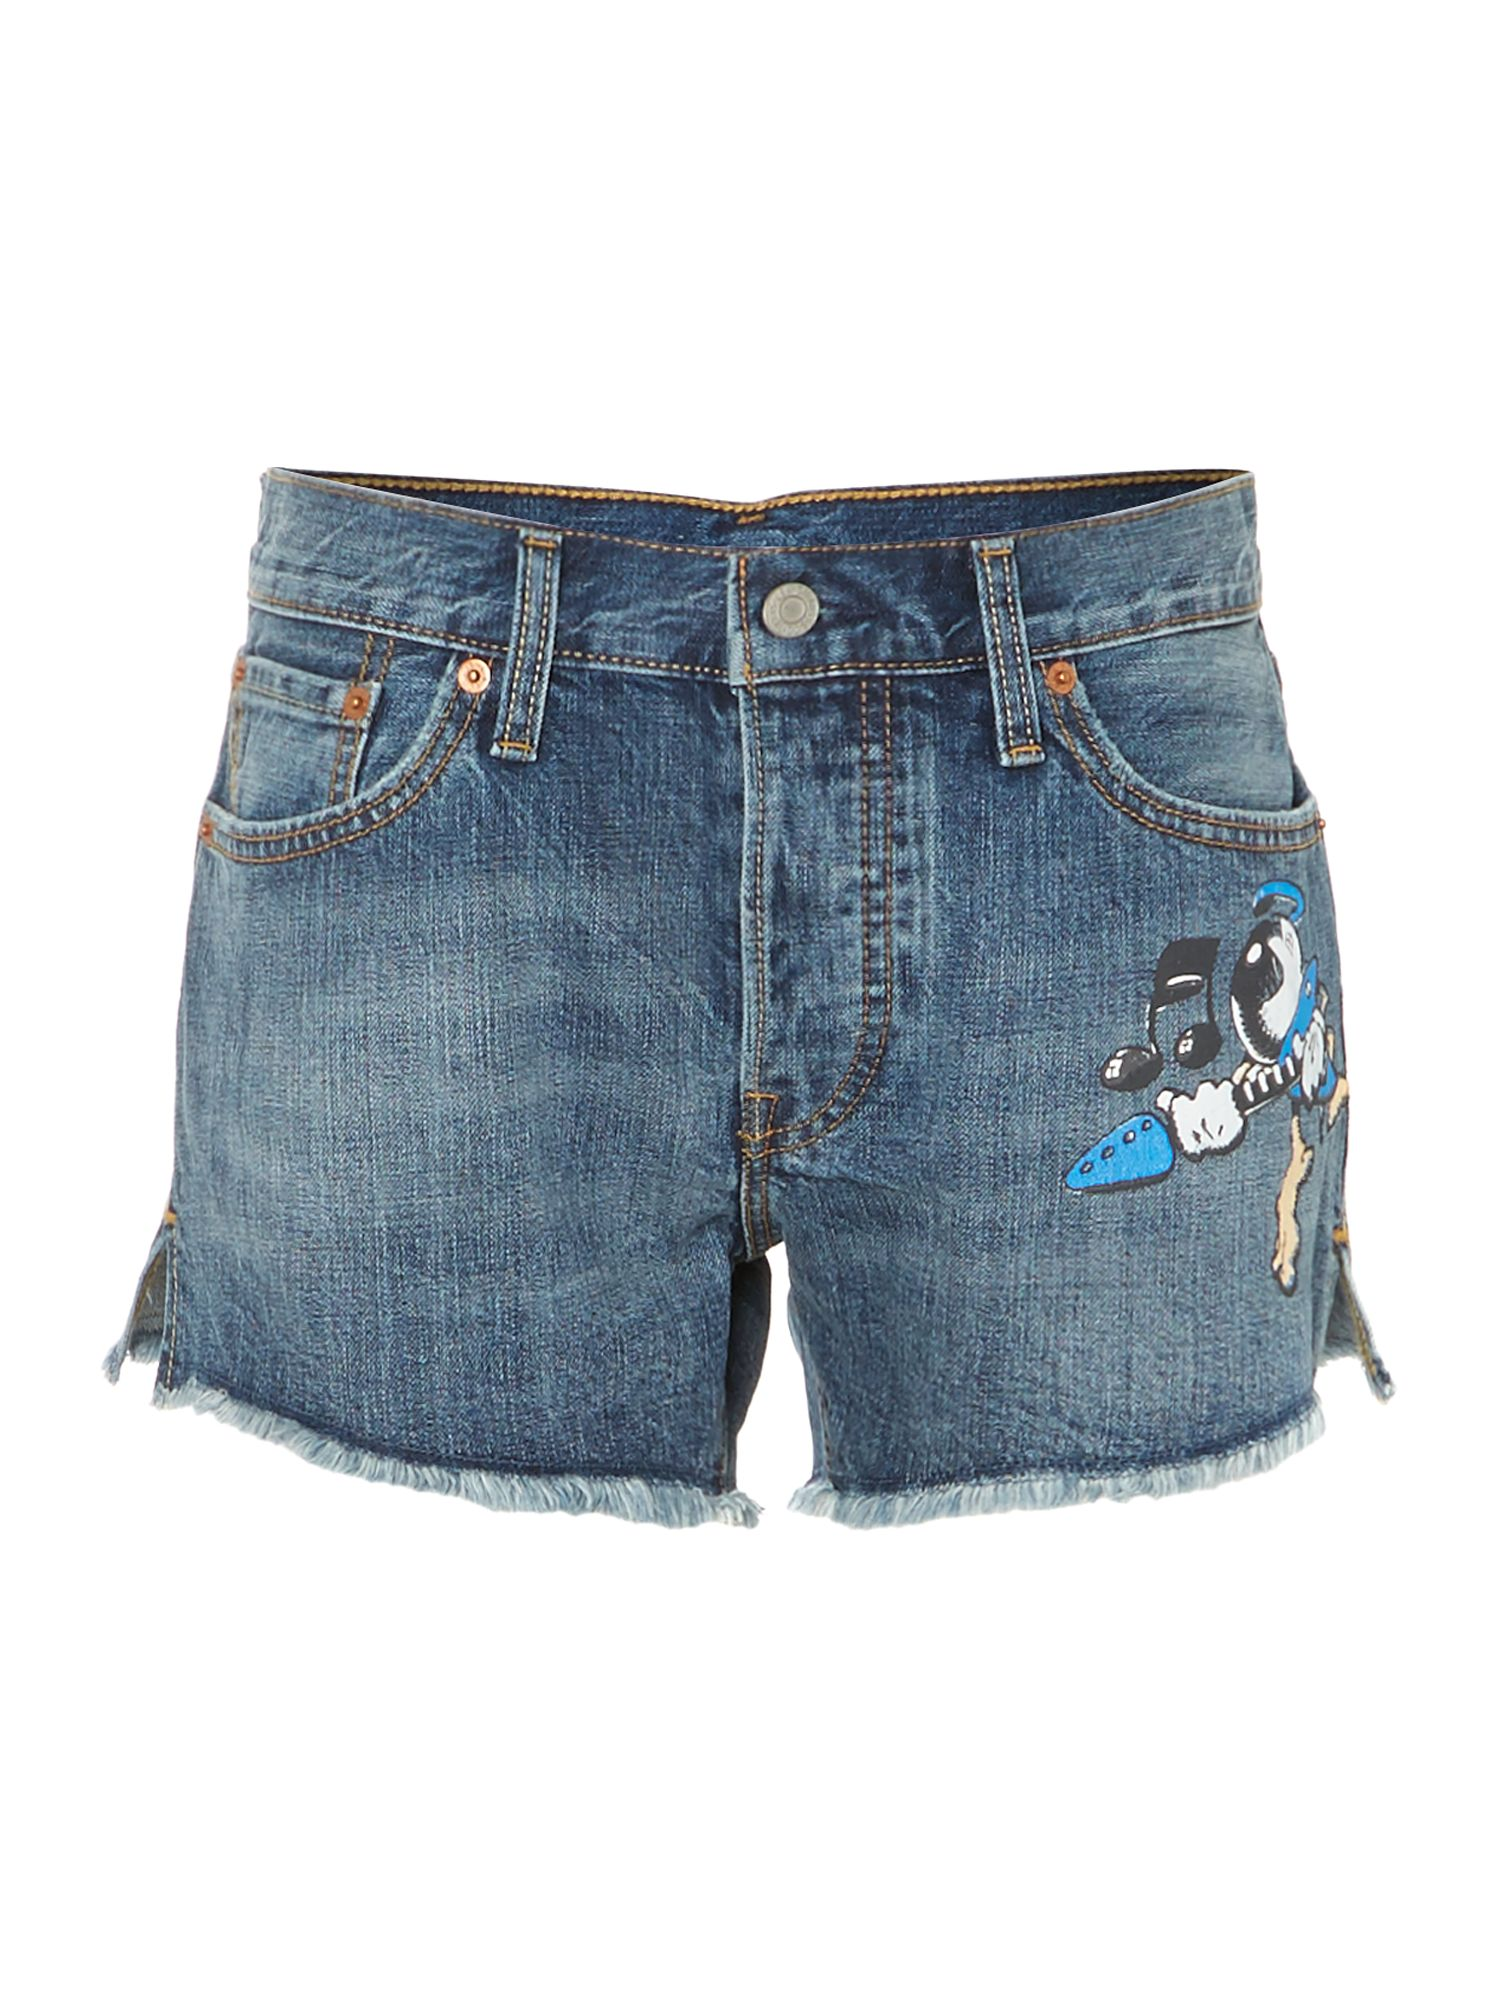 Rick griffin denim shorts in indigo current